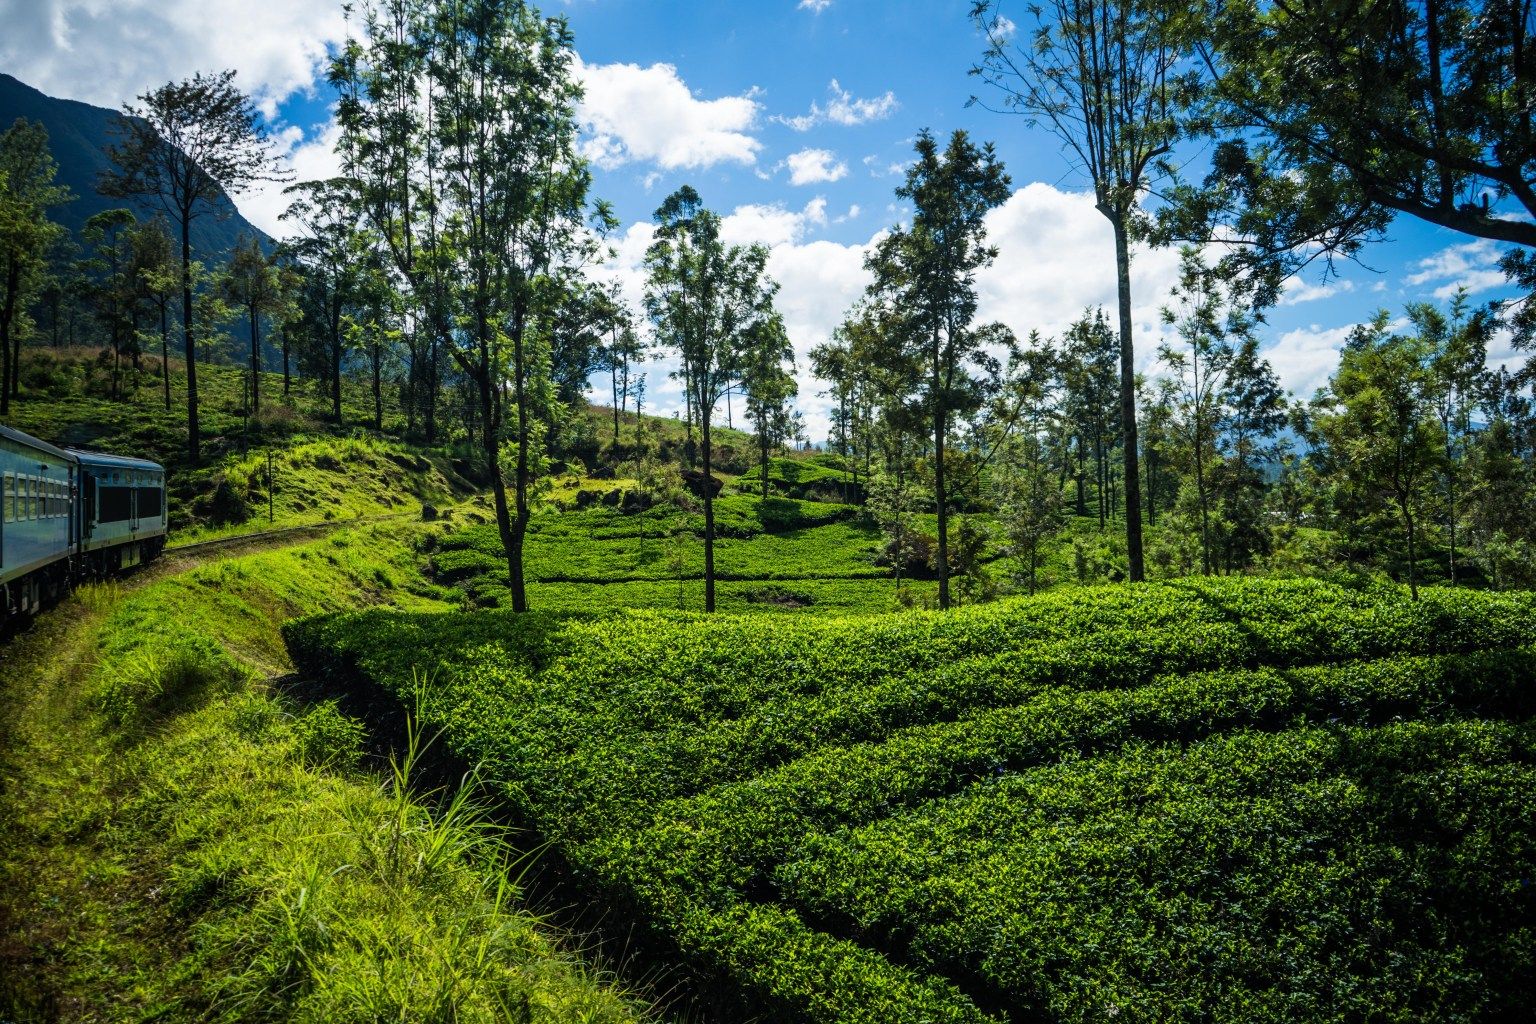 Ella-Kandy train passing through the tea plantations in Nuwara Eliya